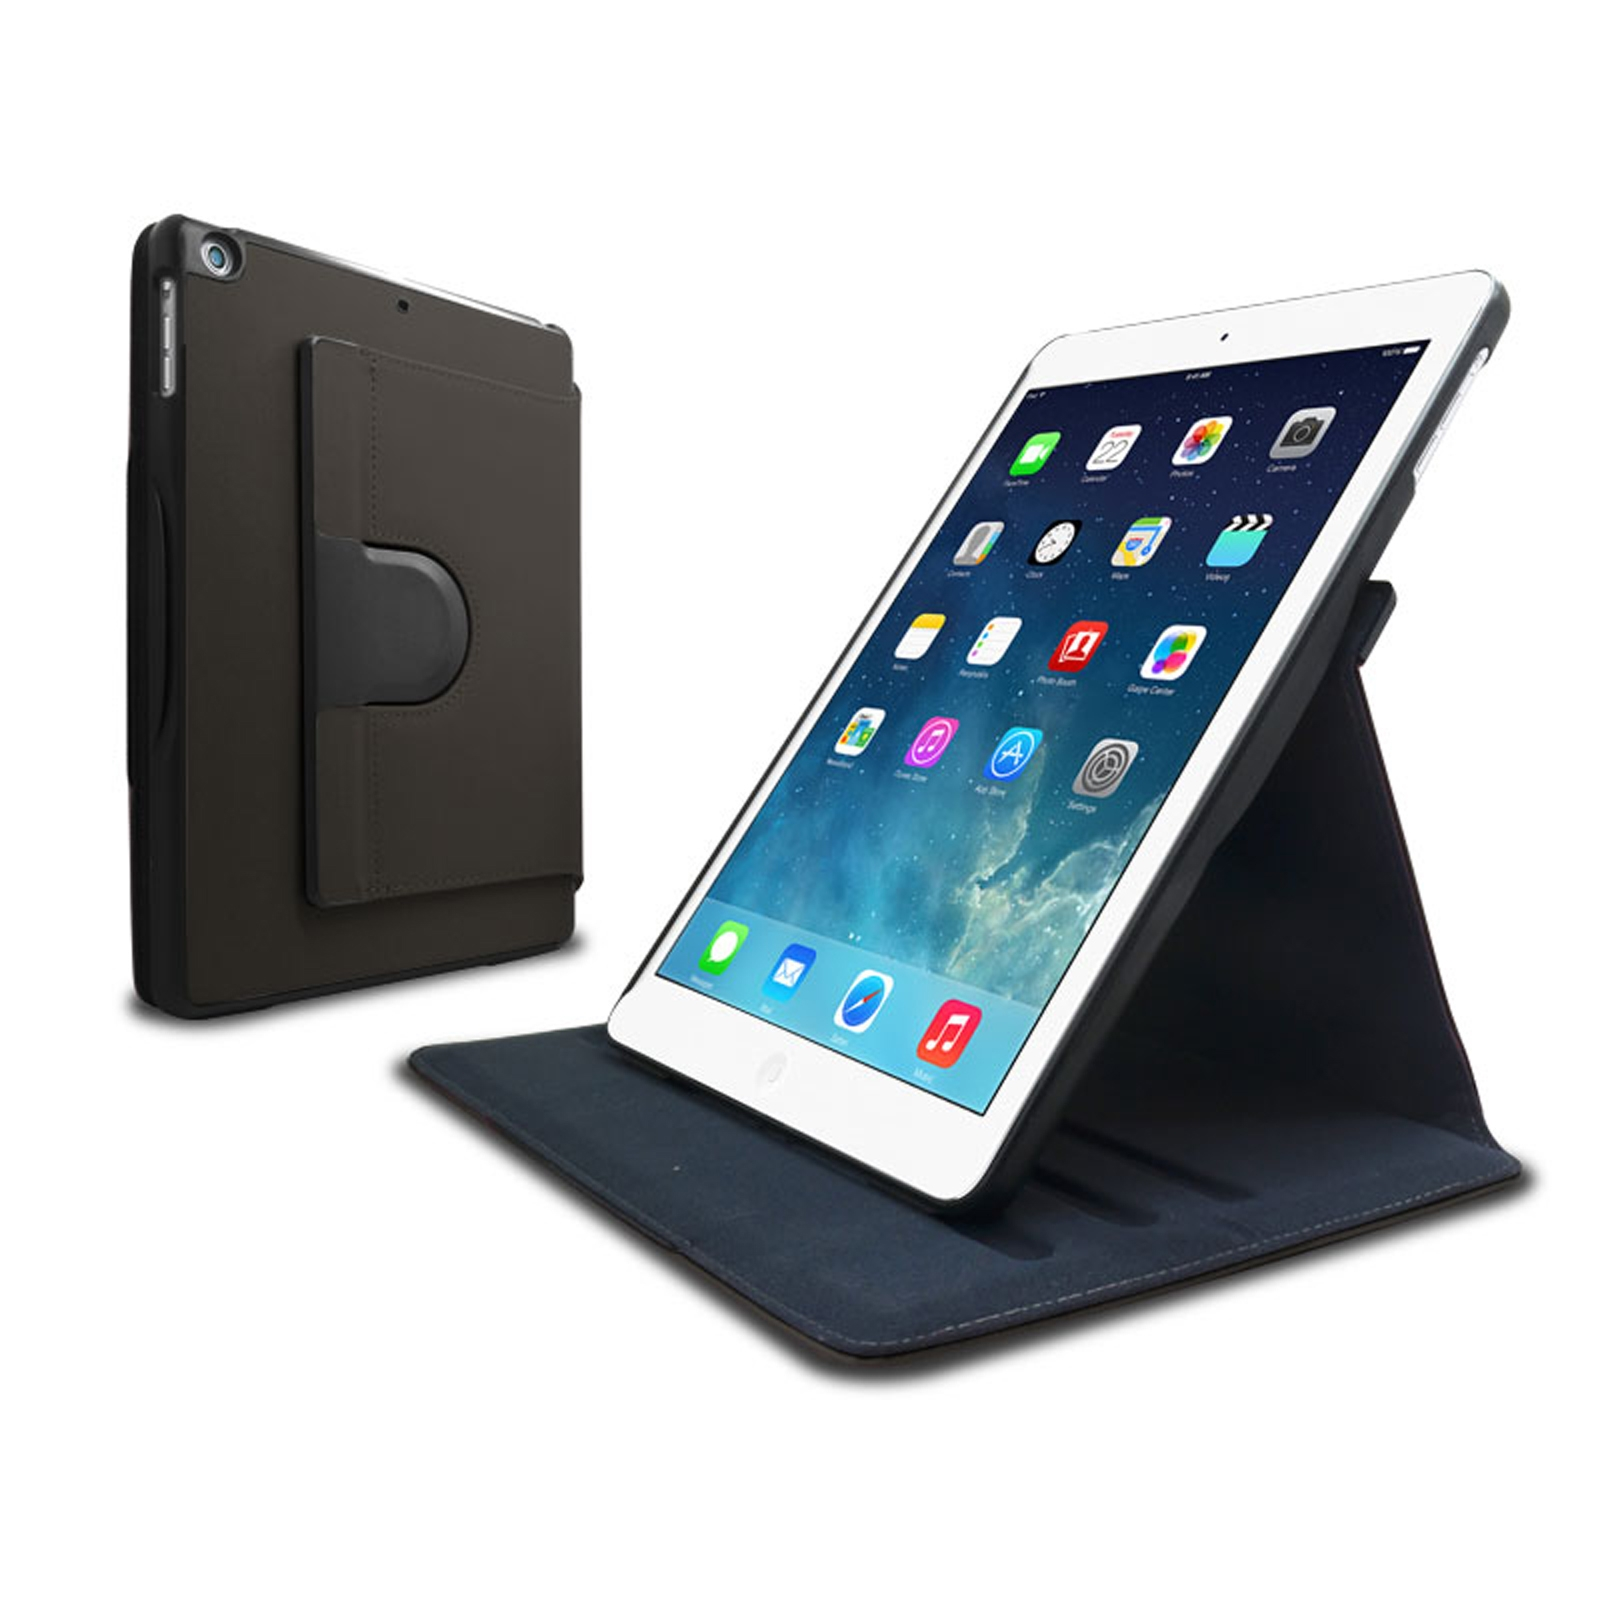 Test de la coque Novodio Smart BackCover pour l'iPad